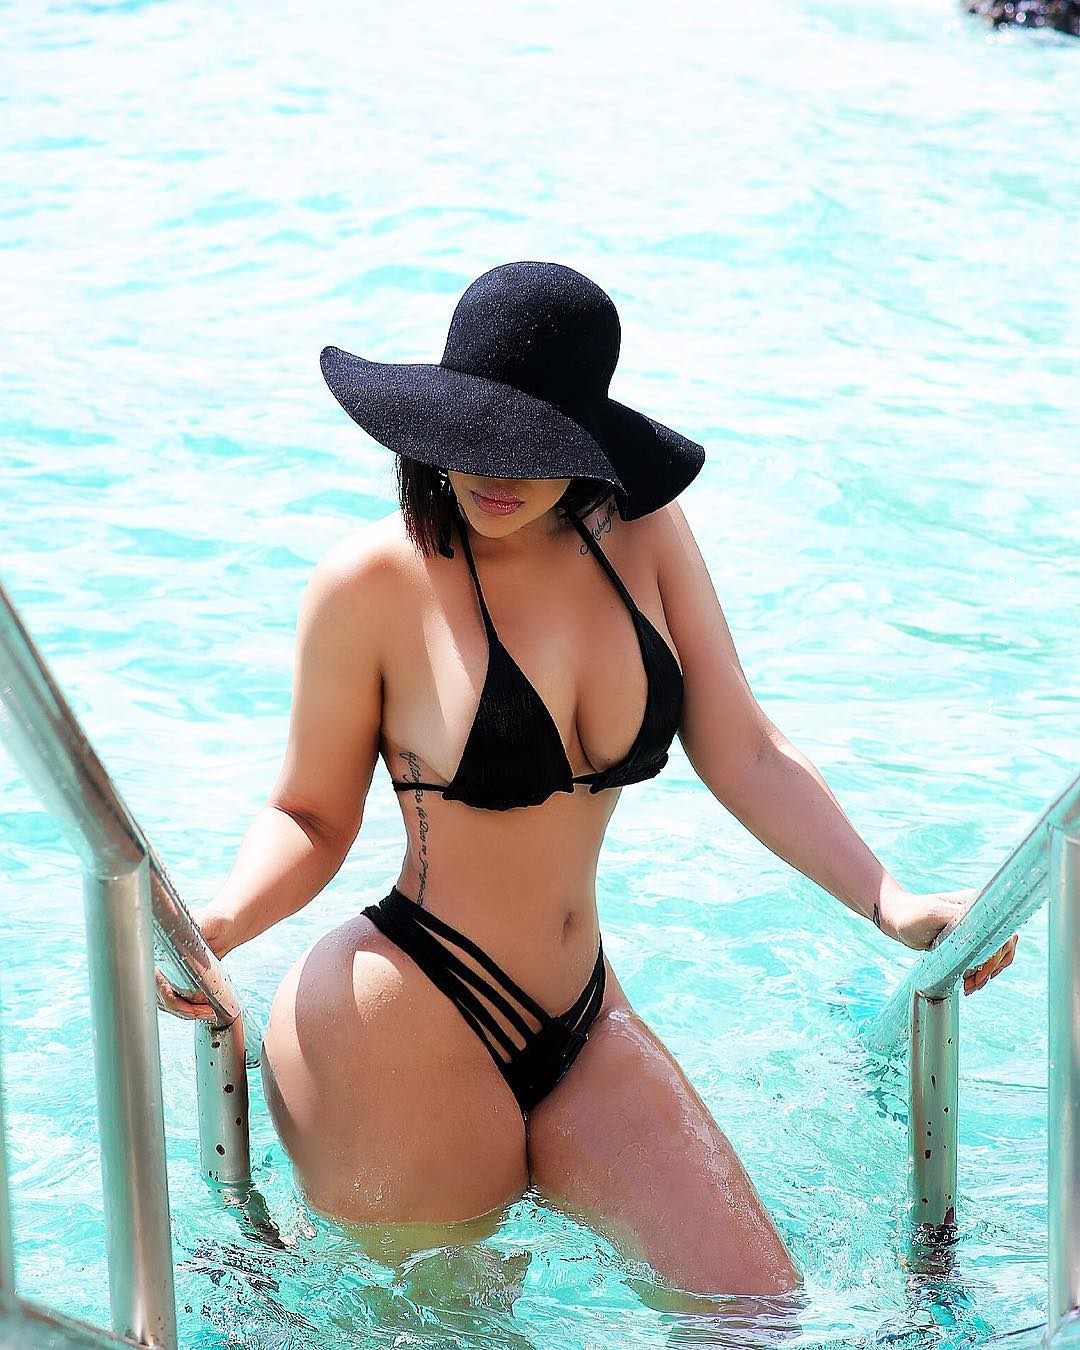 Ana Carolina Castillo, Hot Bikini Dominicana – 17 Abril 2019